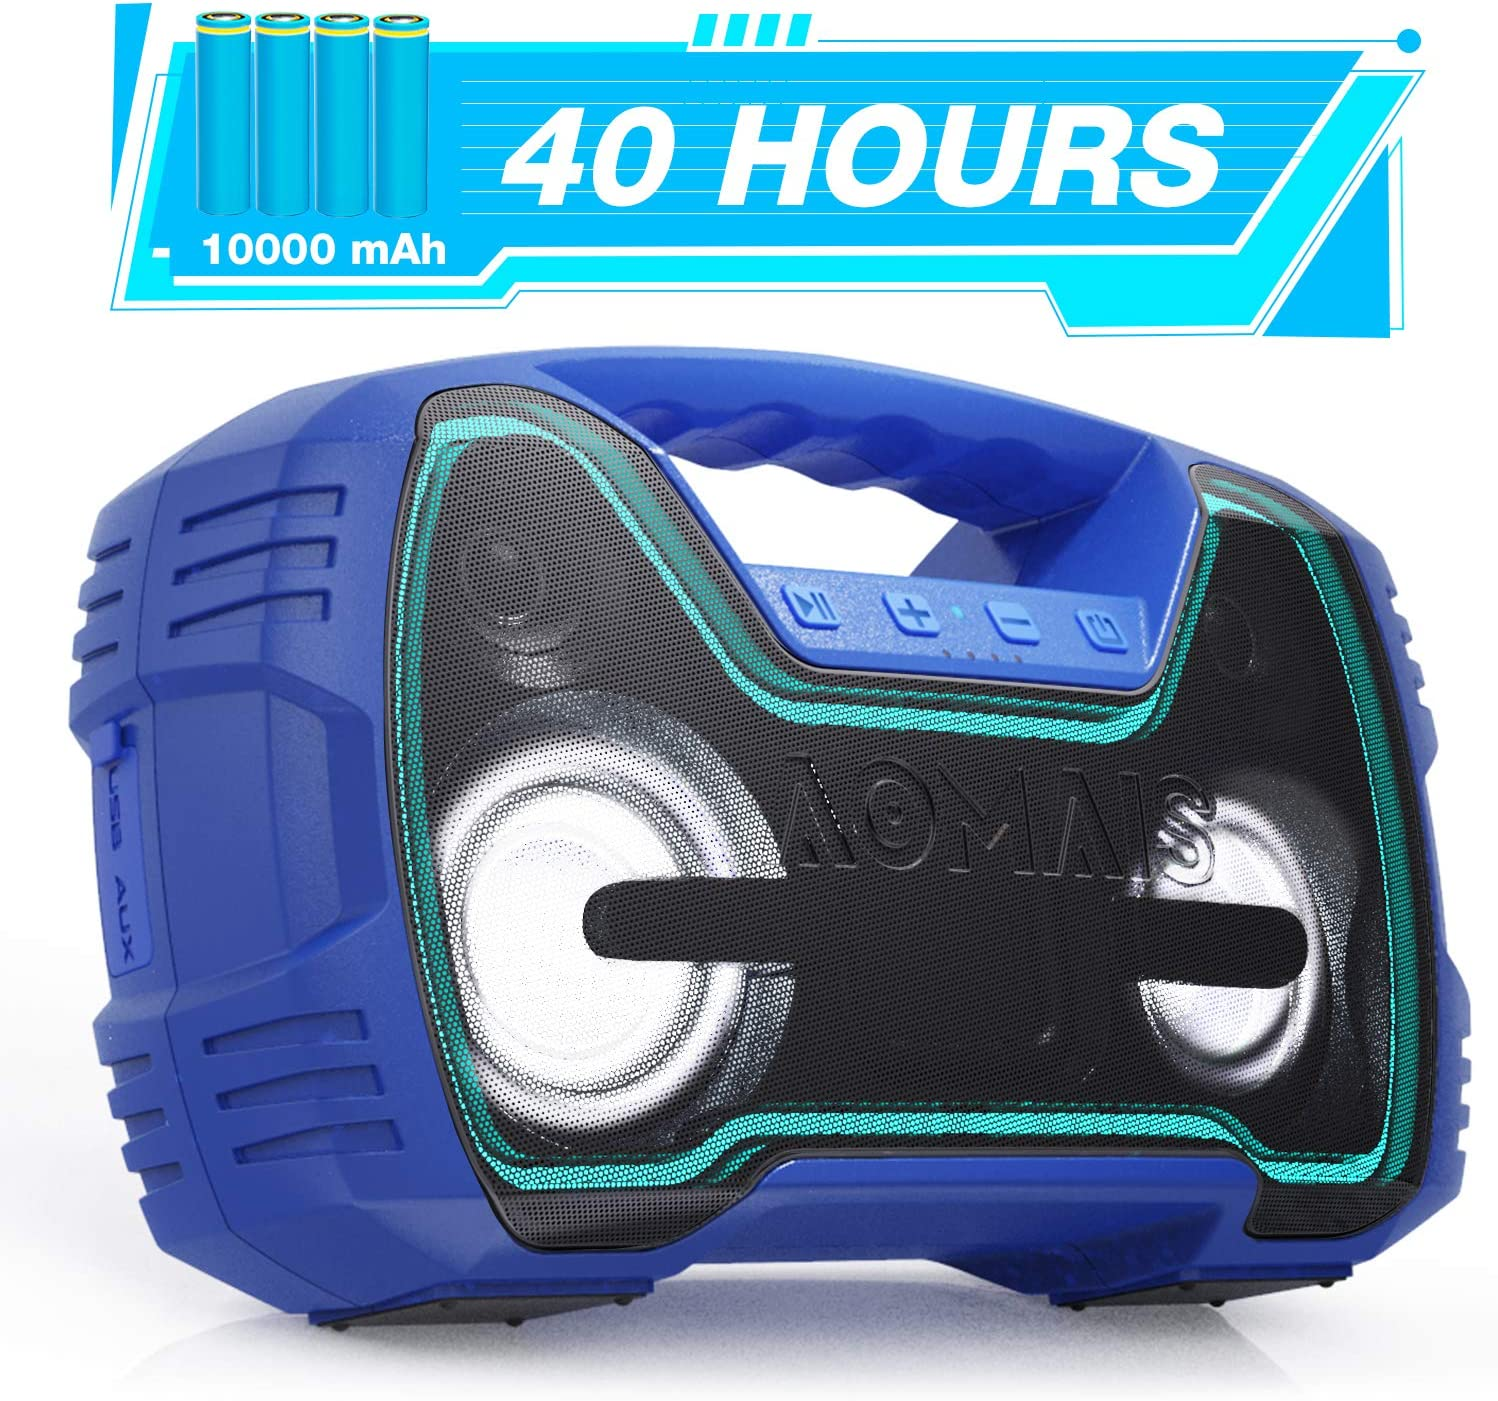 AOMAIS U-Go-best waterproof speakers